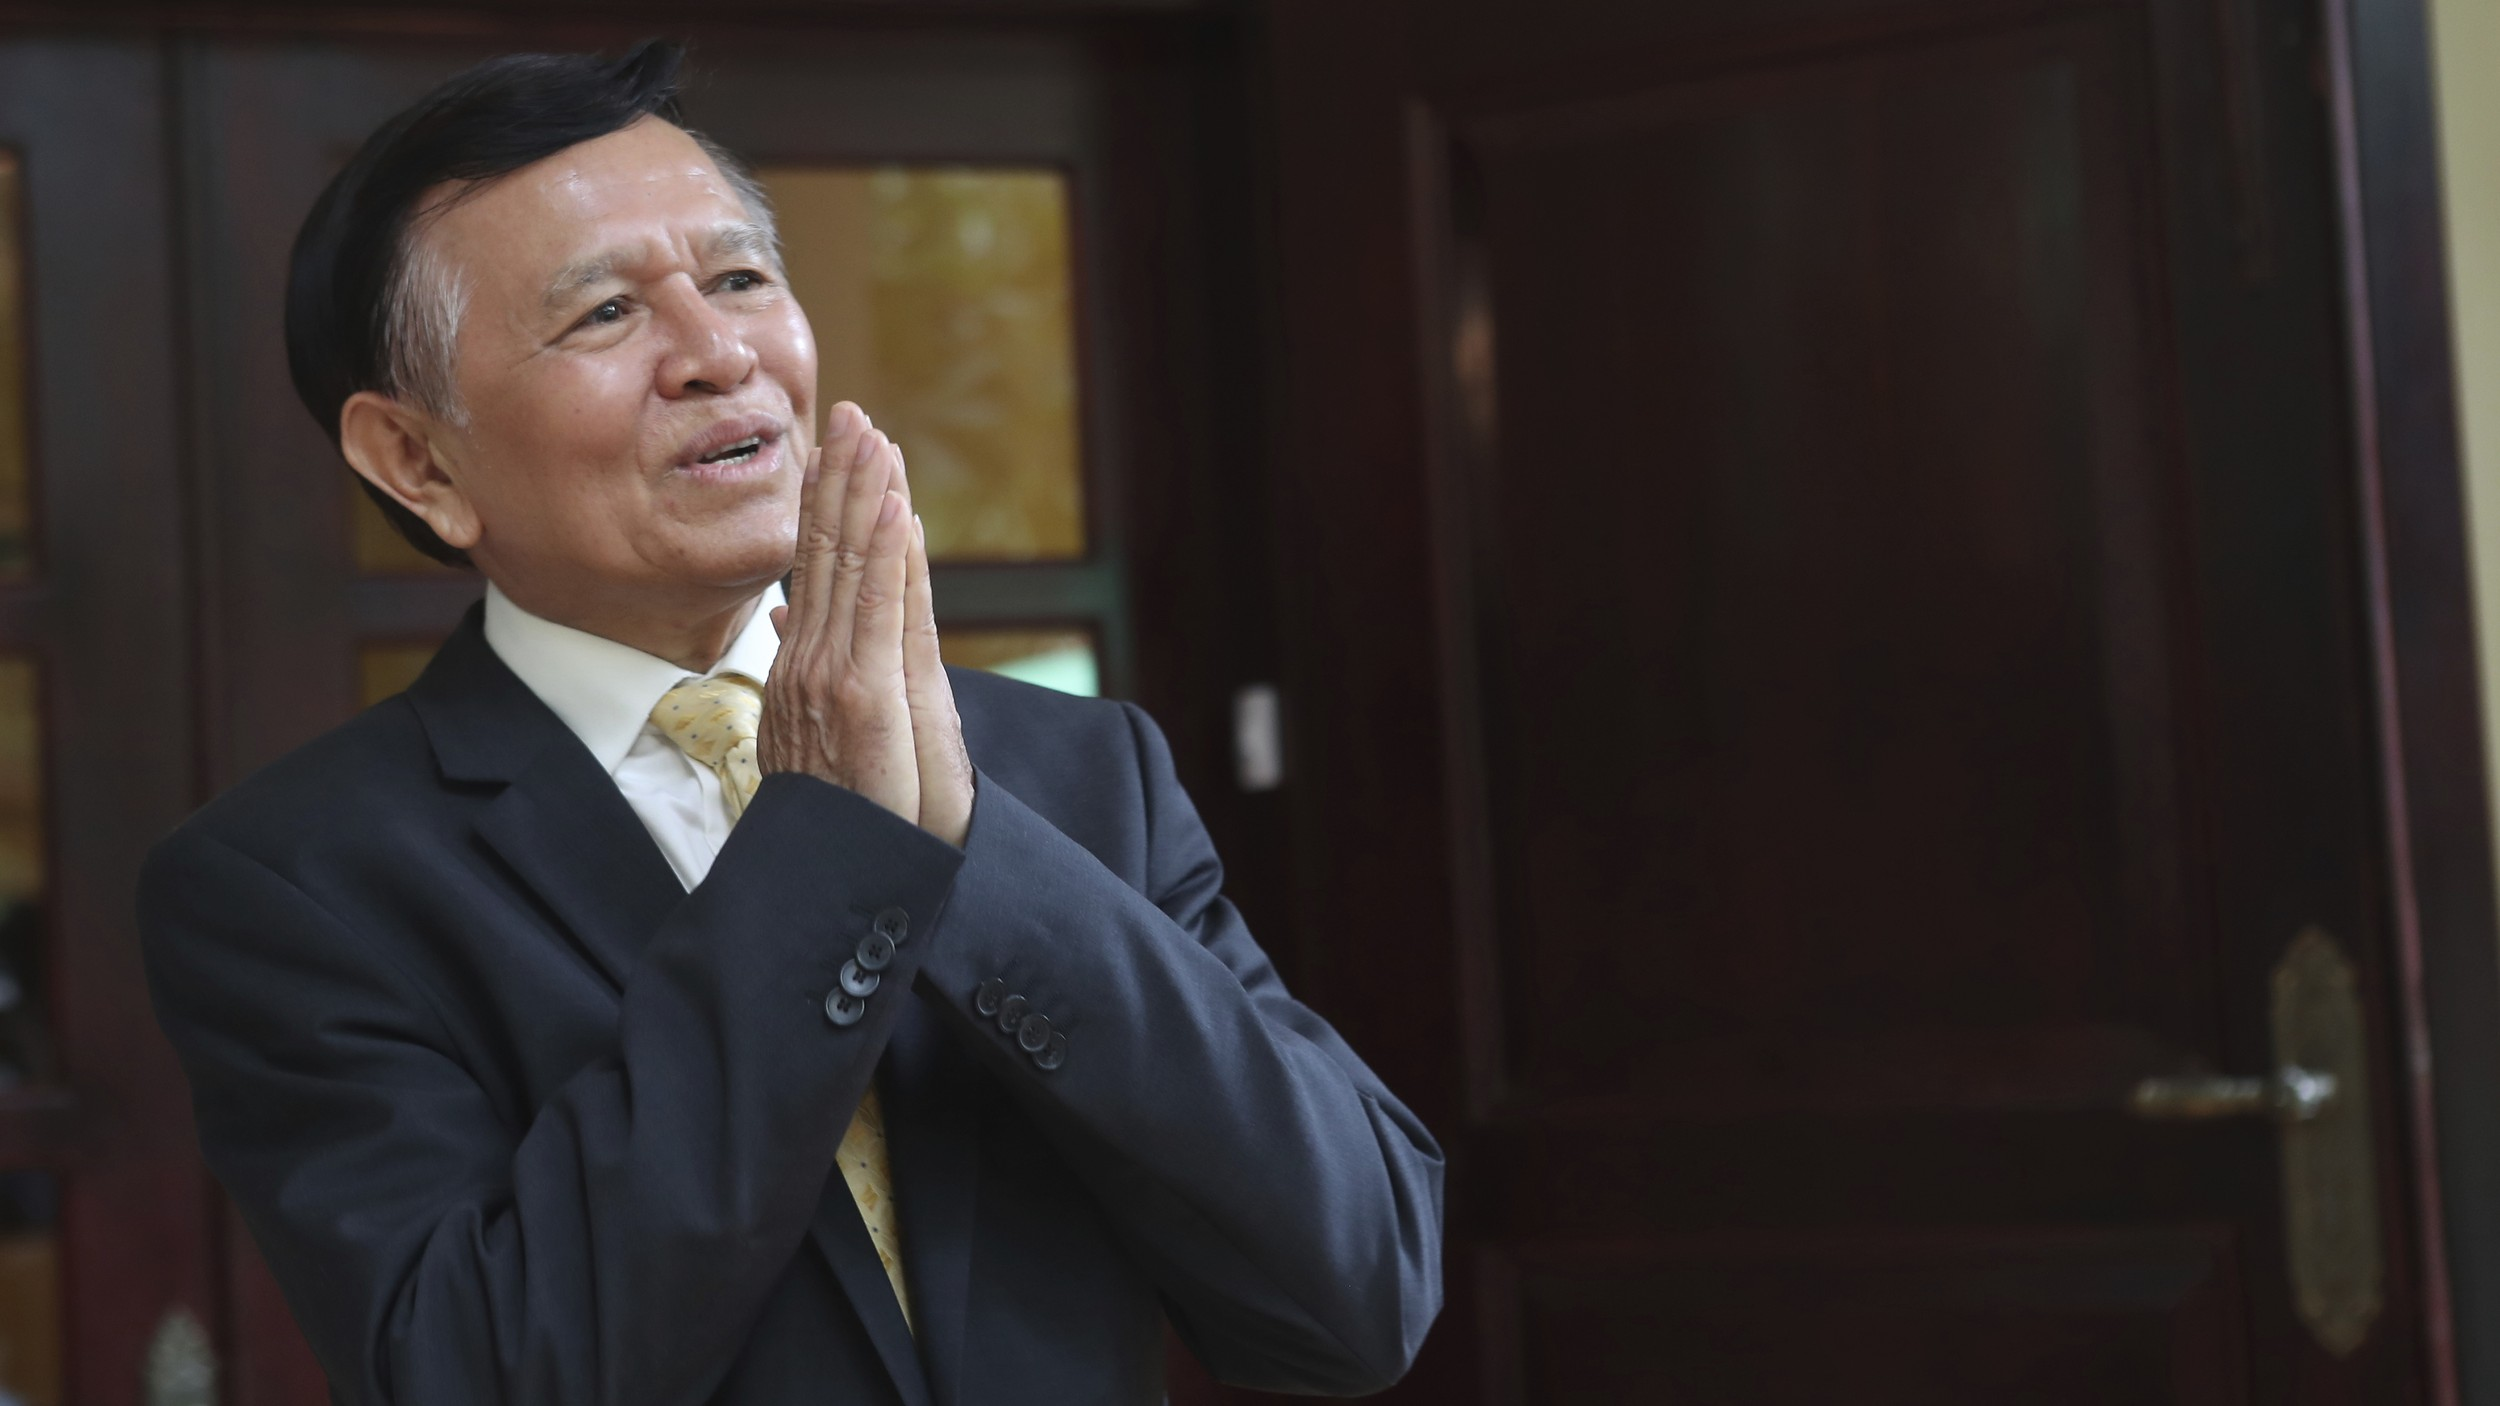 Cambodia begins treason trial against opposition leader despite global outcry